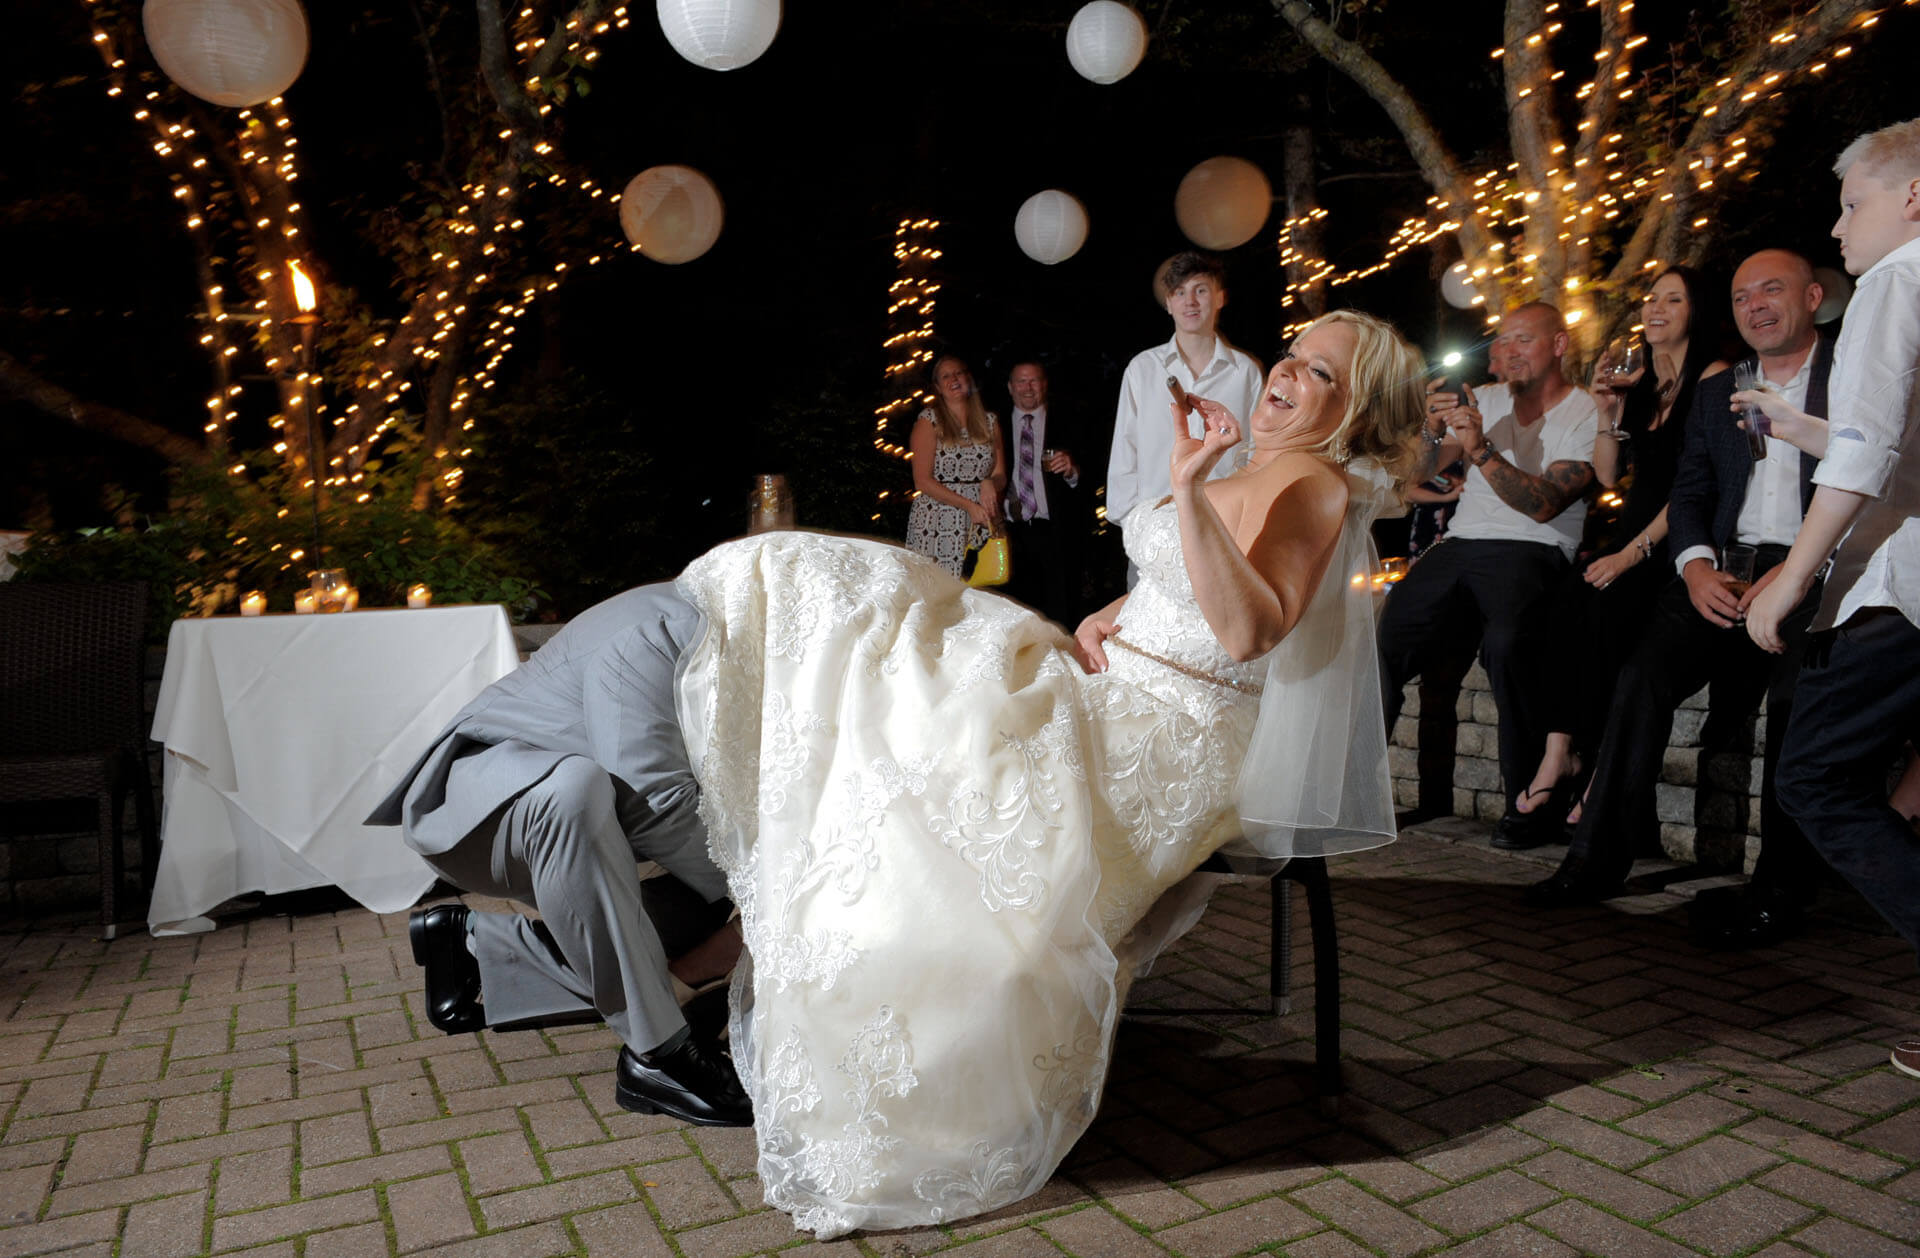 Candid wedding photography showing the bride laughing while the groom tries to find the garter at their outdoor Cafe Cortina wedding reception in Farmington, Michigan.